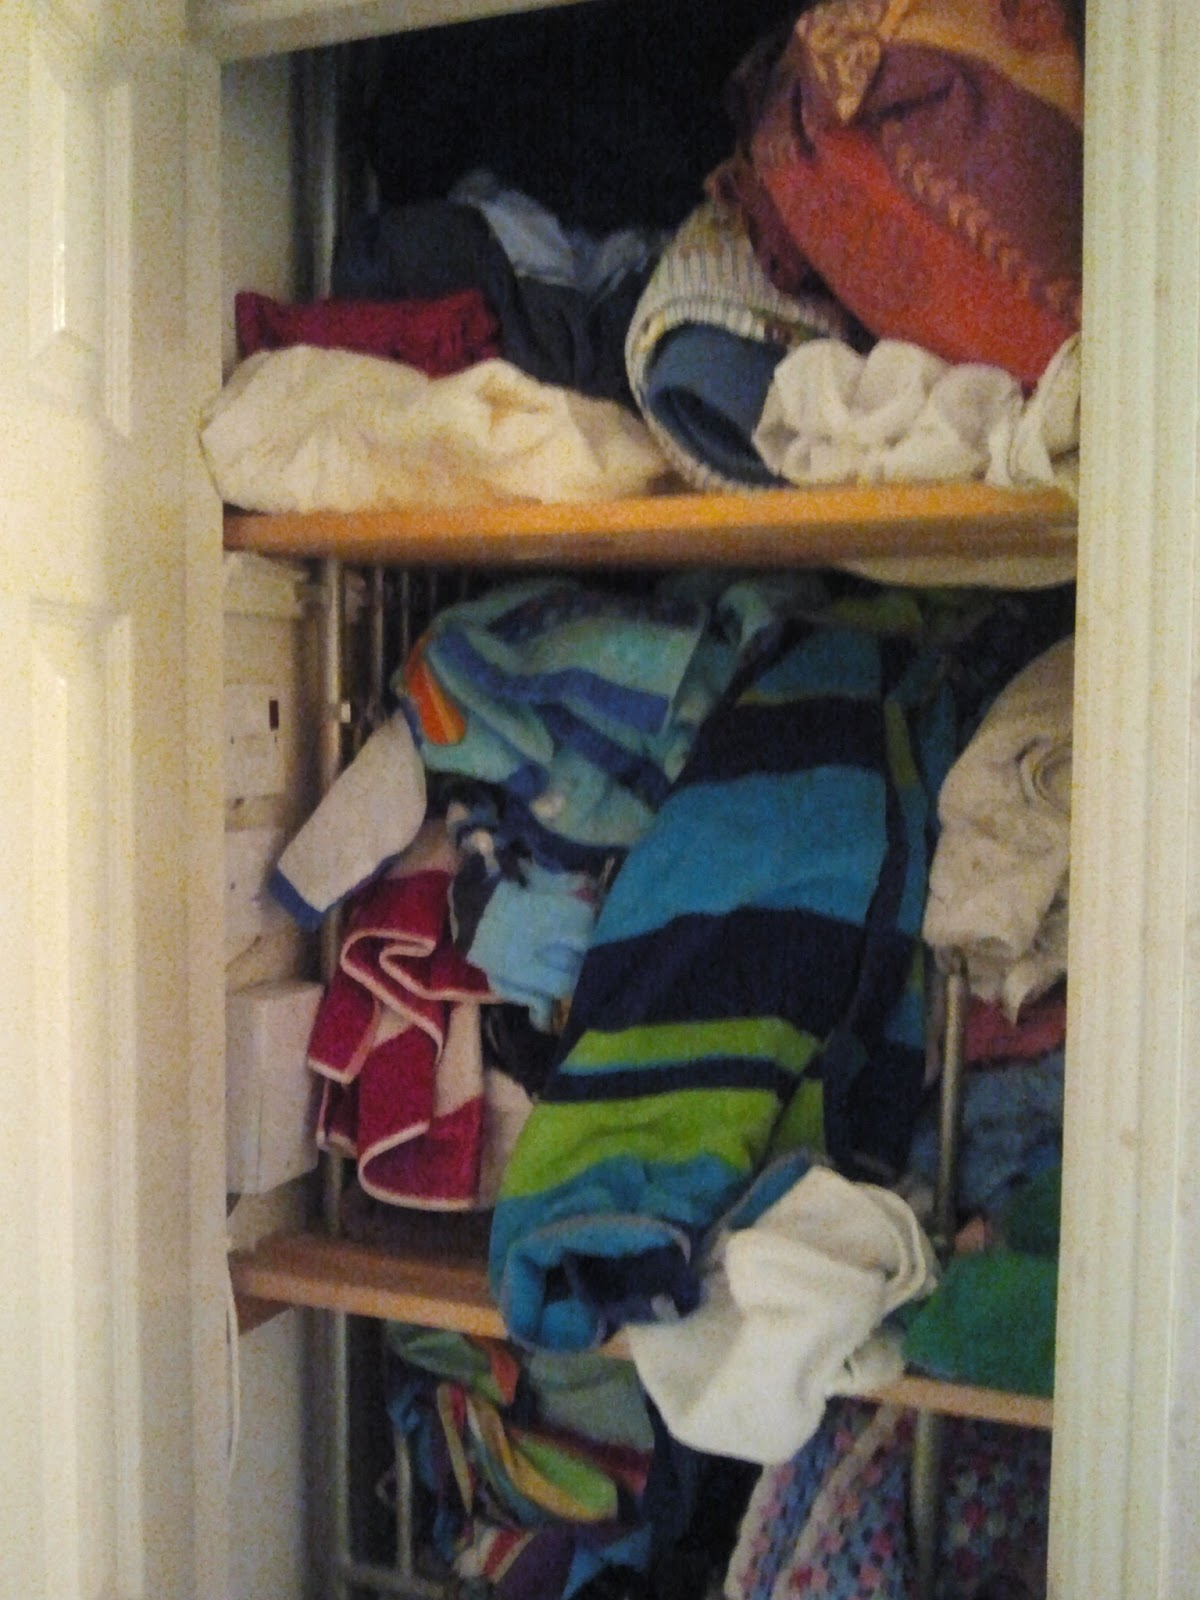 Amazing photo of My airing cupboard before with #284961 color and 1200x1600 pixels